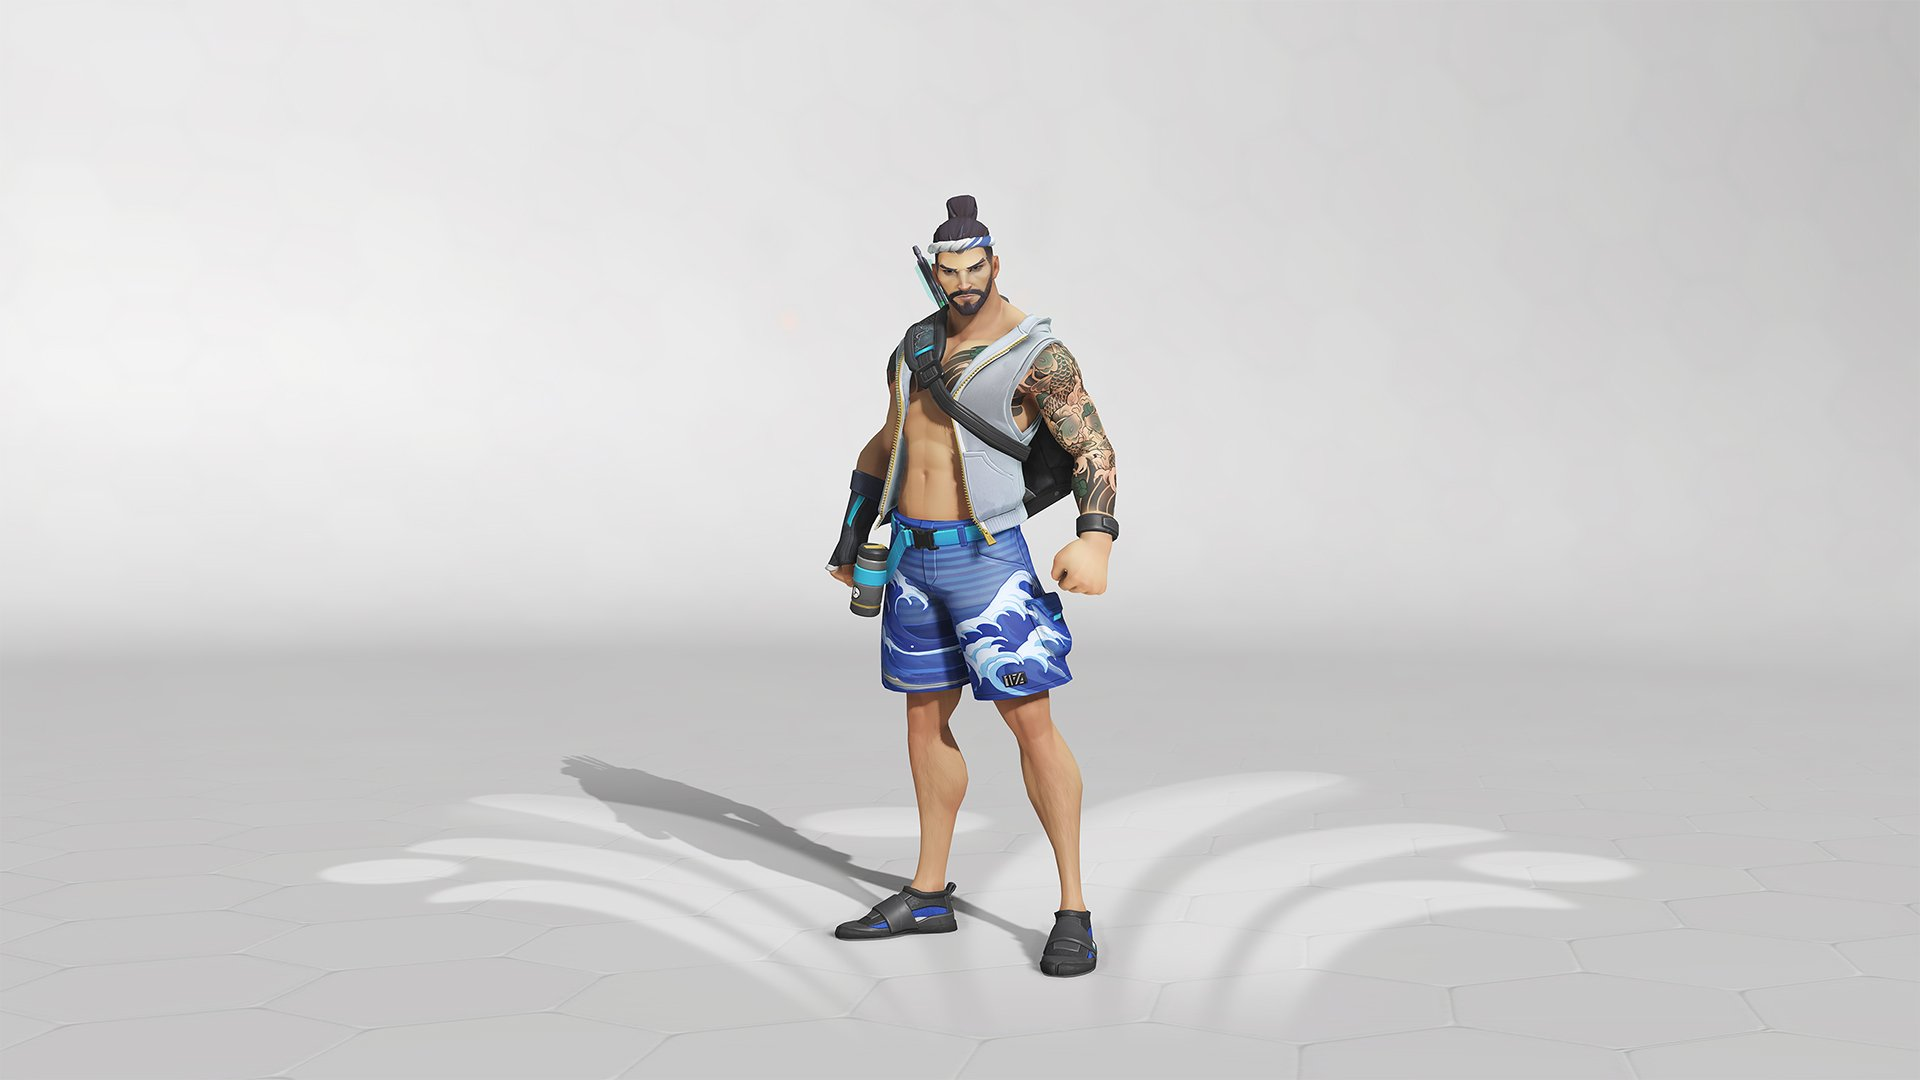 Overwatch summer Games 2019 Hanzo Skin